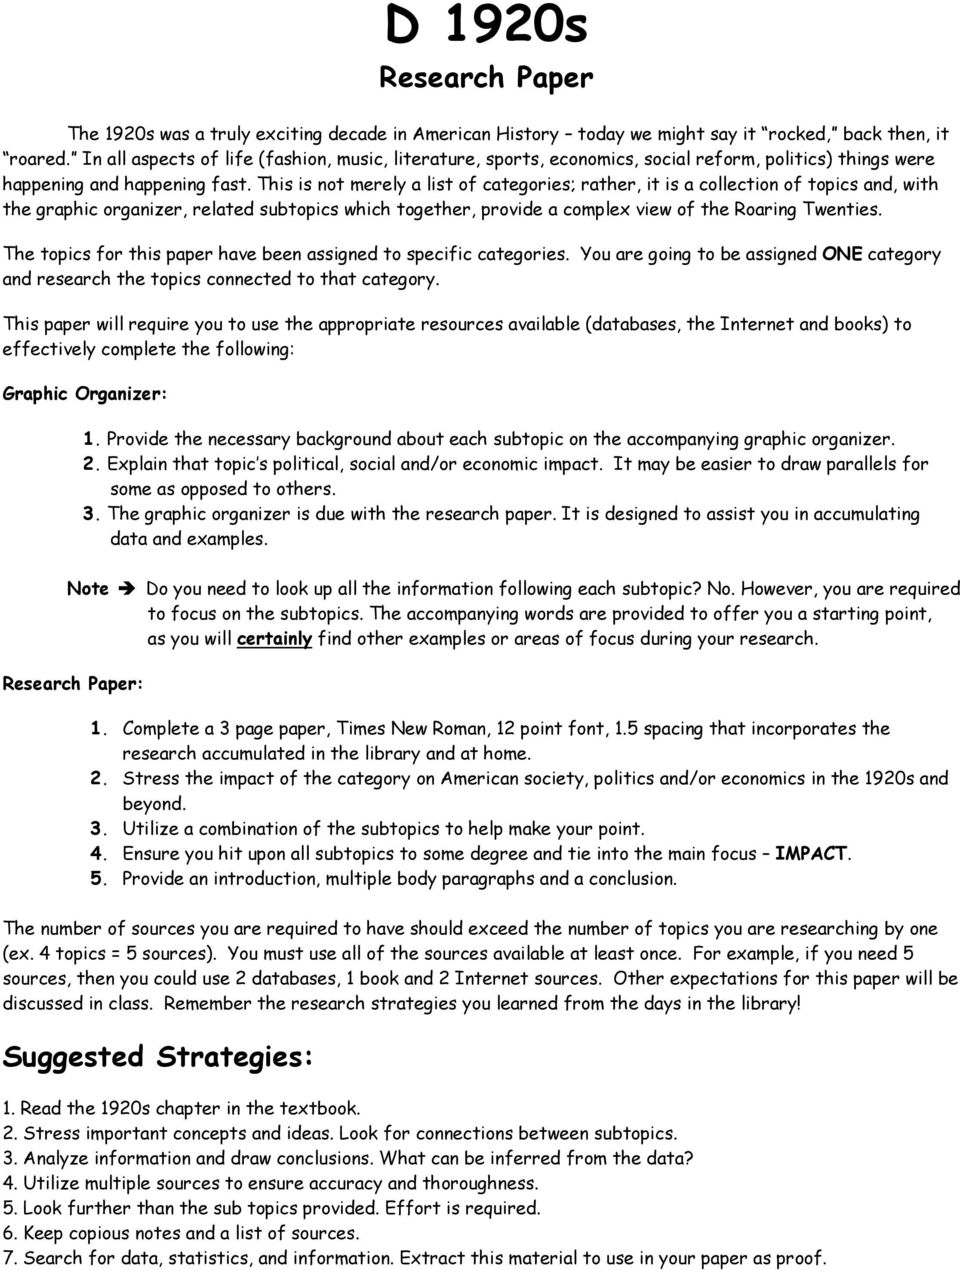 024 Page 1 American Literature History Research Paper Surprising Topics Full